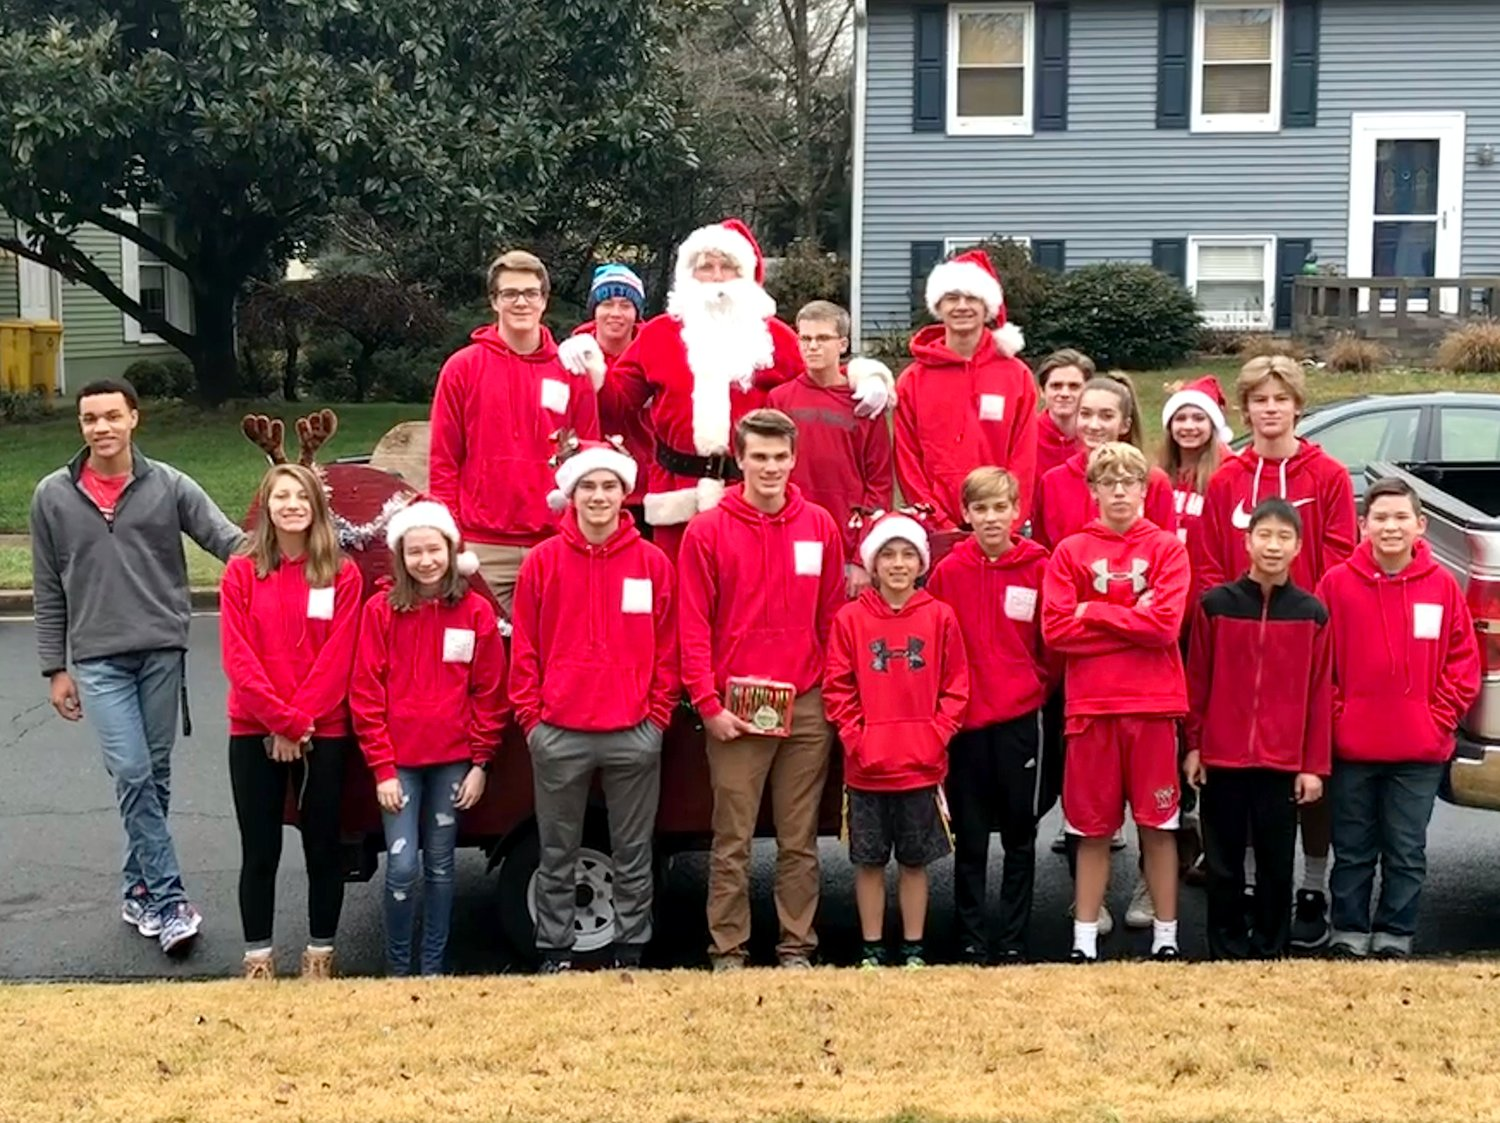 For more than a decade, teens who live near Riverdale Road have gathered toys and nonperishable food to help families in need of Christmas cheer.